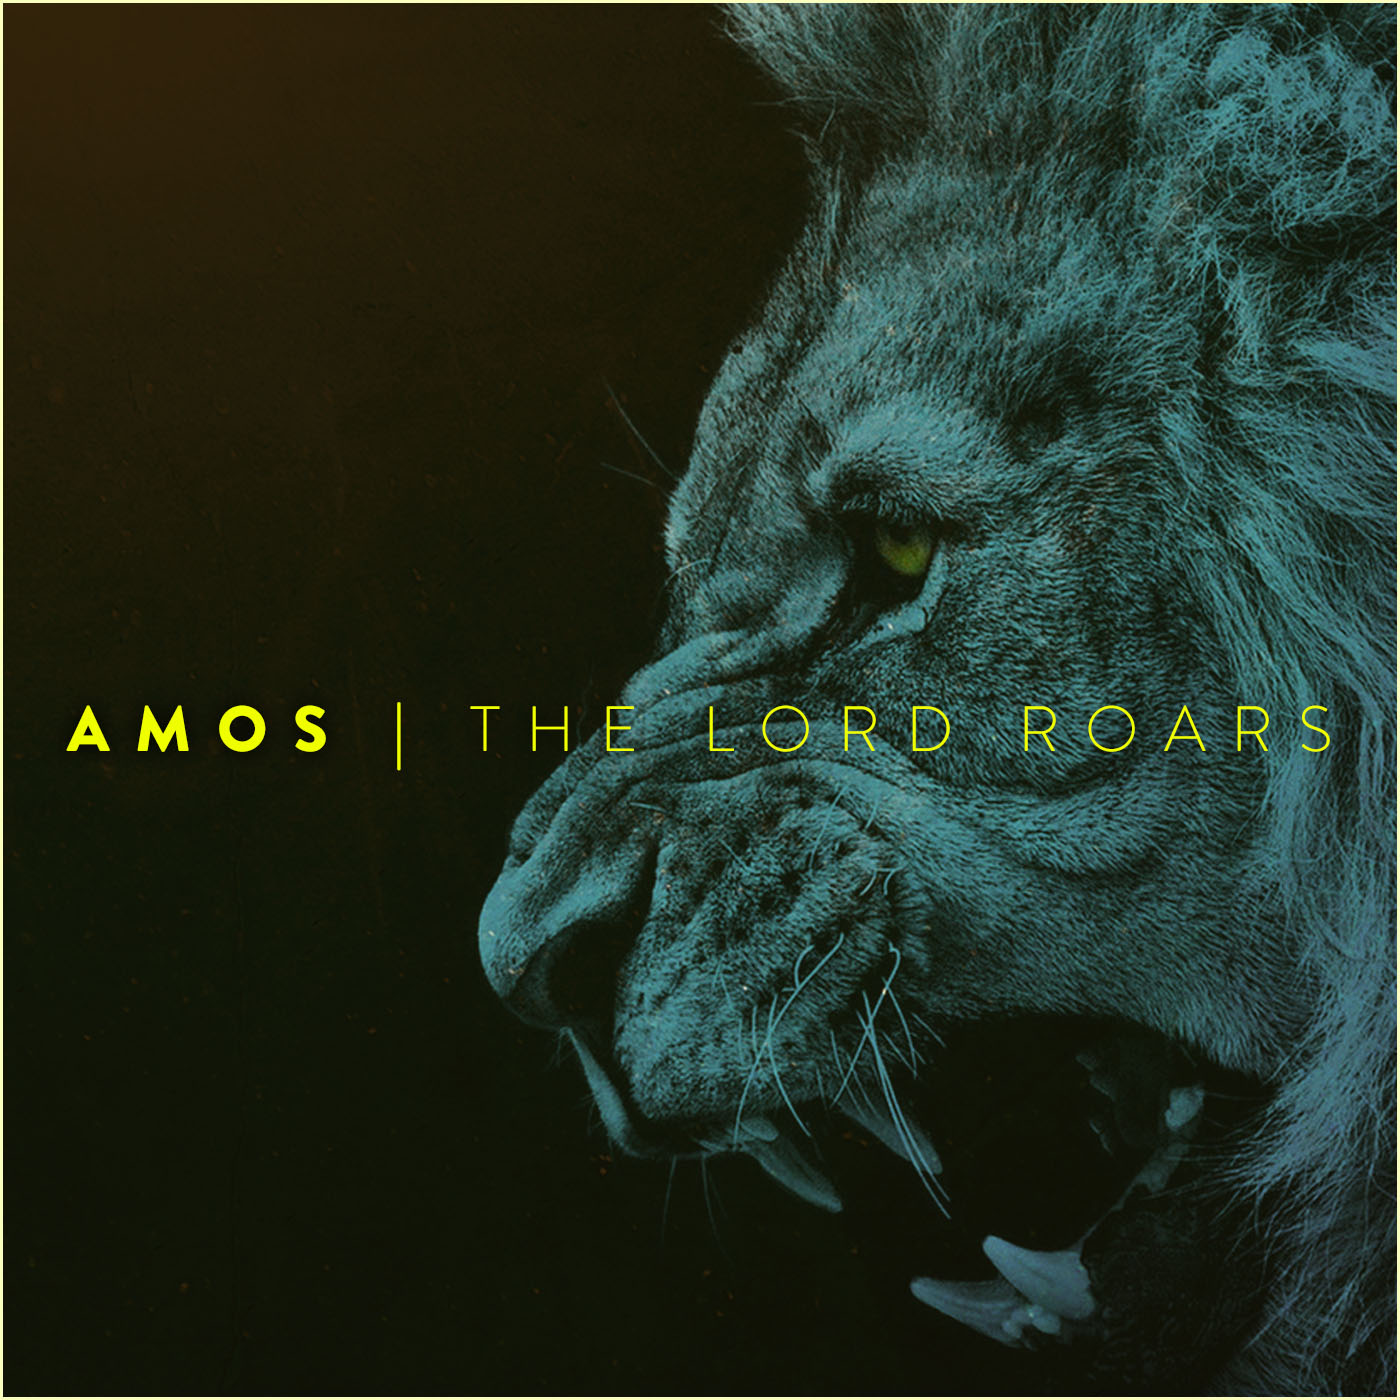 """This is a sermon series on the book of Amos from Rockwall Presbyterian Church, entitled, """"Amos: The Lord Roars."""""""